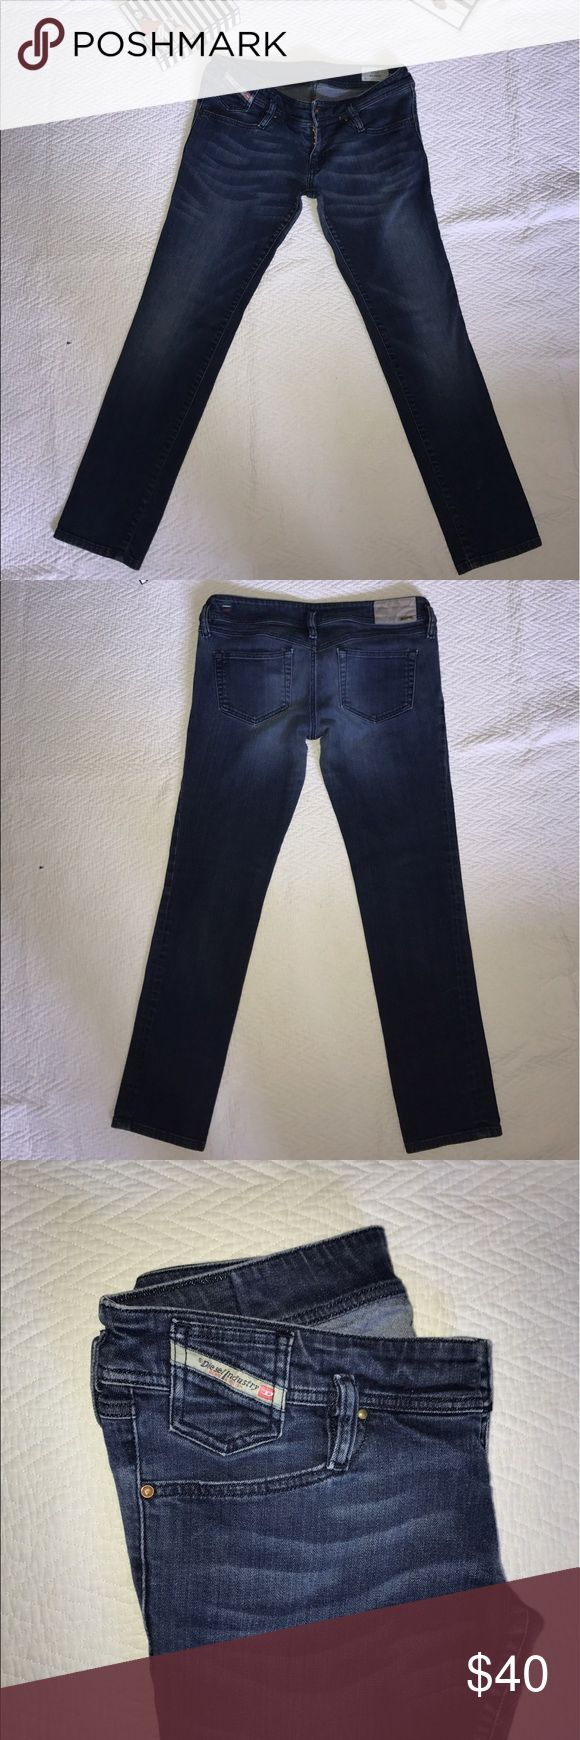 Diesel Industry Denim Jeans Dark wash Diesel brand jeans! Matic style, a Women's 31 and Length of 32! New without tags!! Diesel Jeans Straight Leg